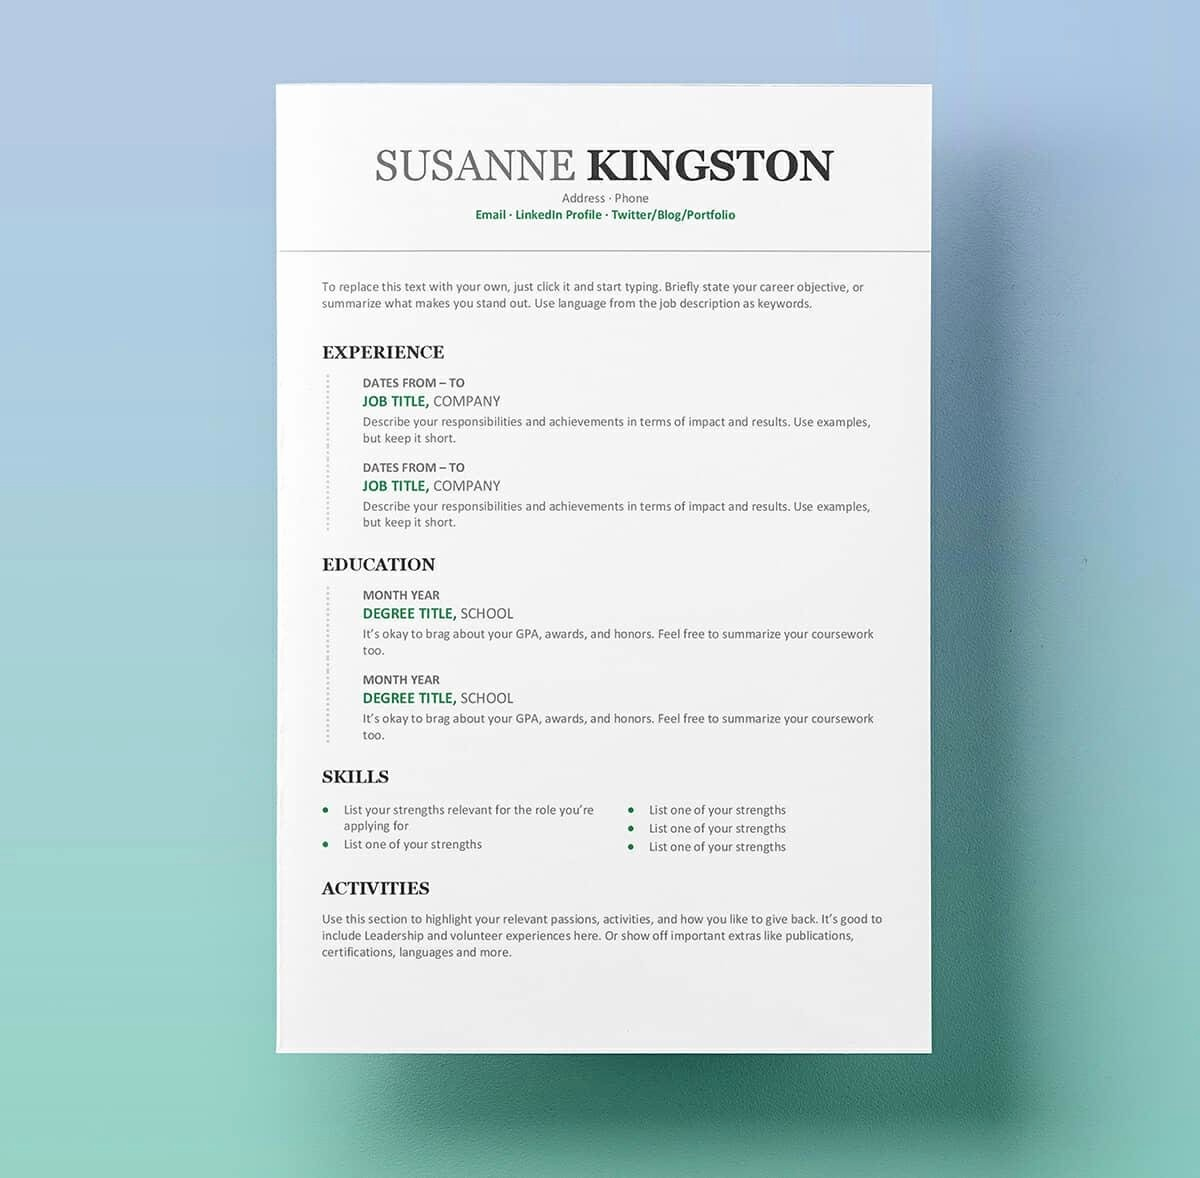 Ms Word Template for Resume Inspirational Resume Templates for Word Free 15 Examples for Download